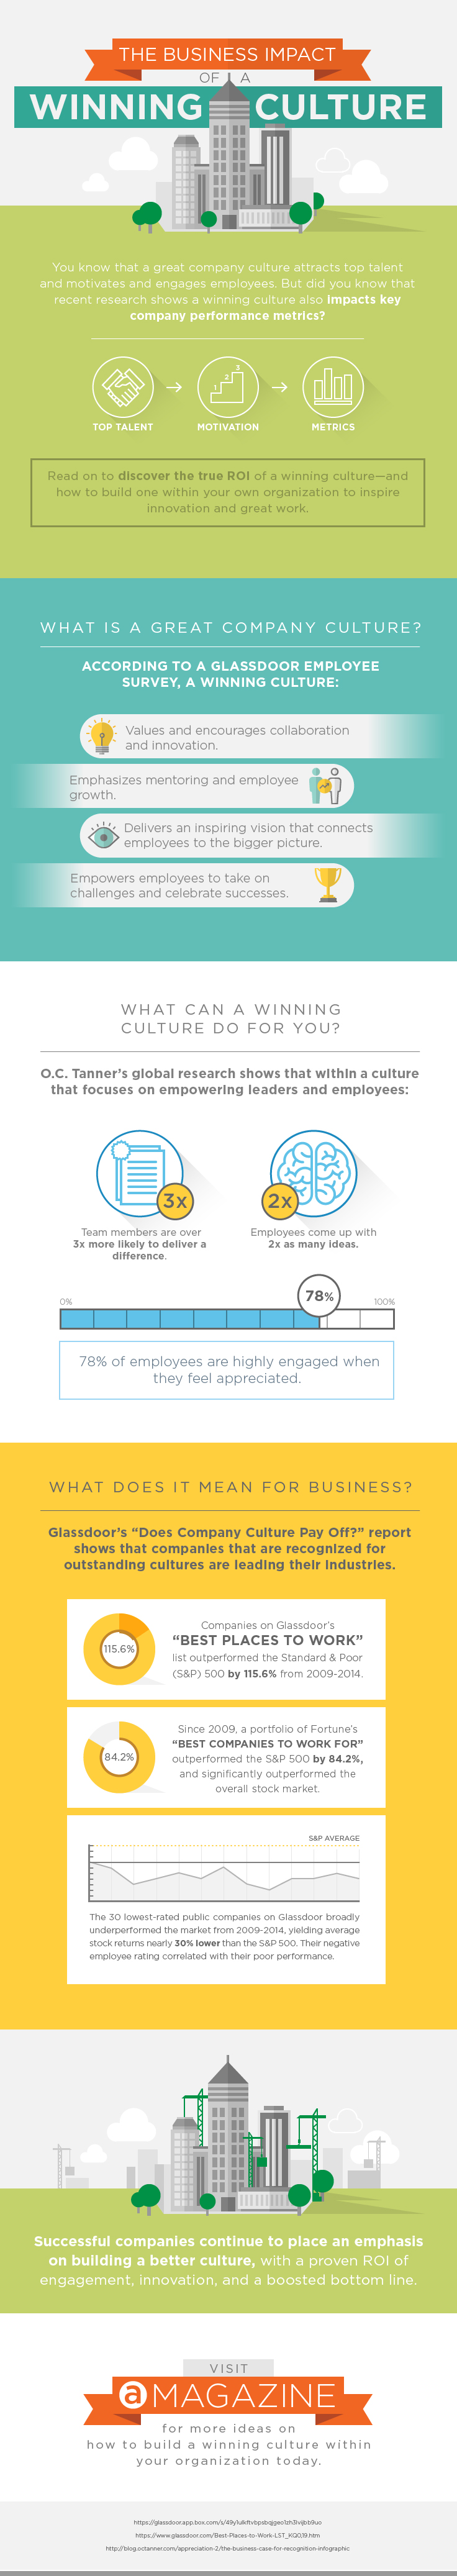 INF The Business Impact of a Winning Culture01 (3).jpg